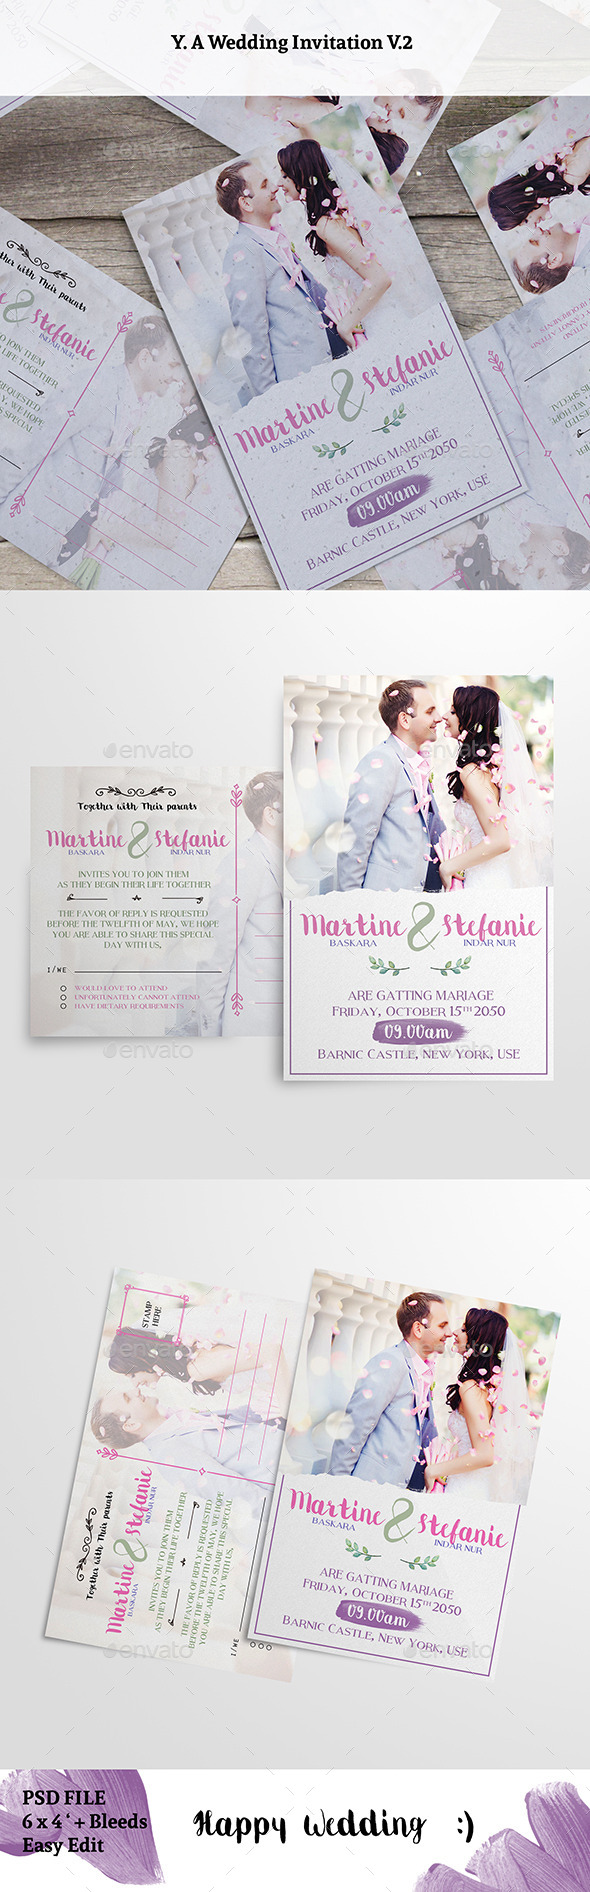 Wedding Invitation V2 - Weddings Cards & Invites